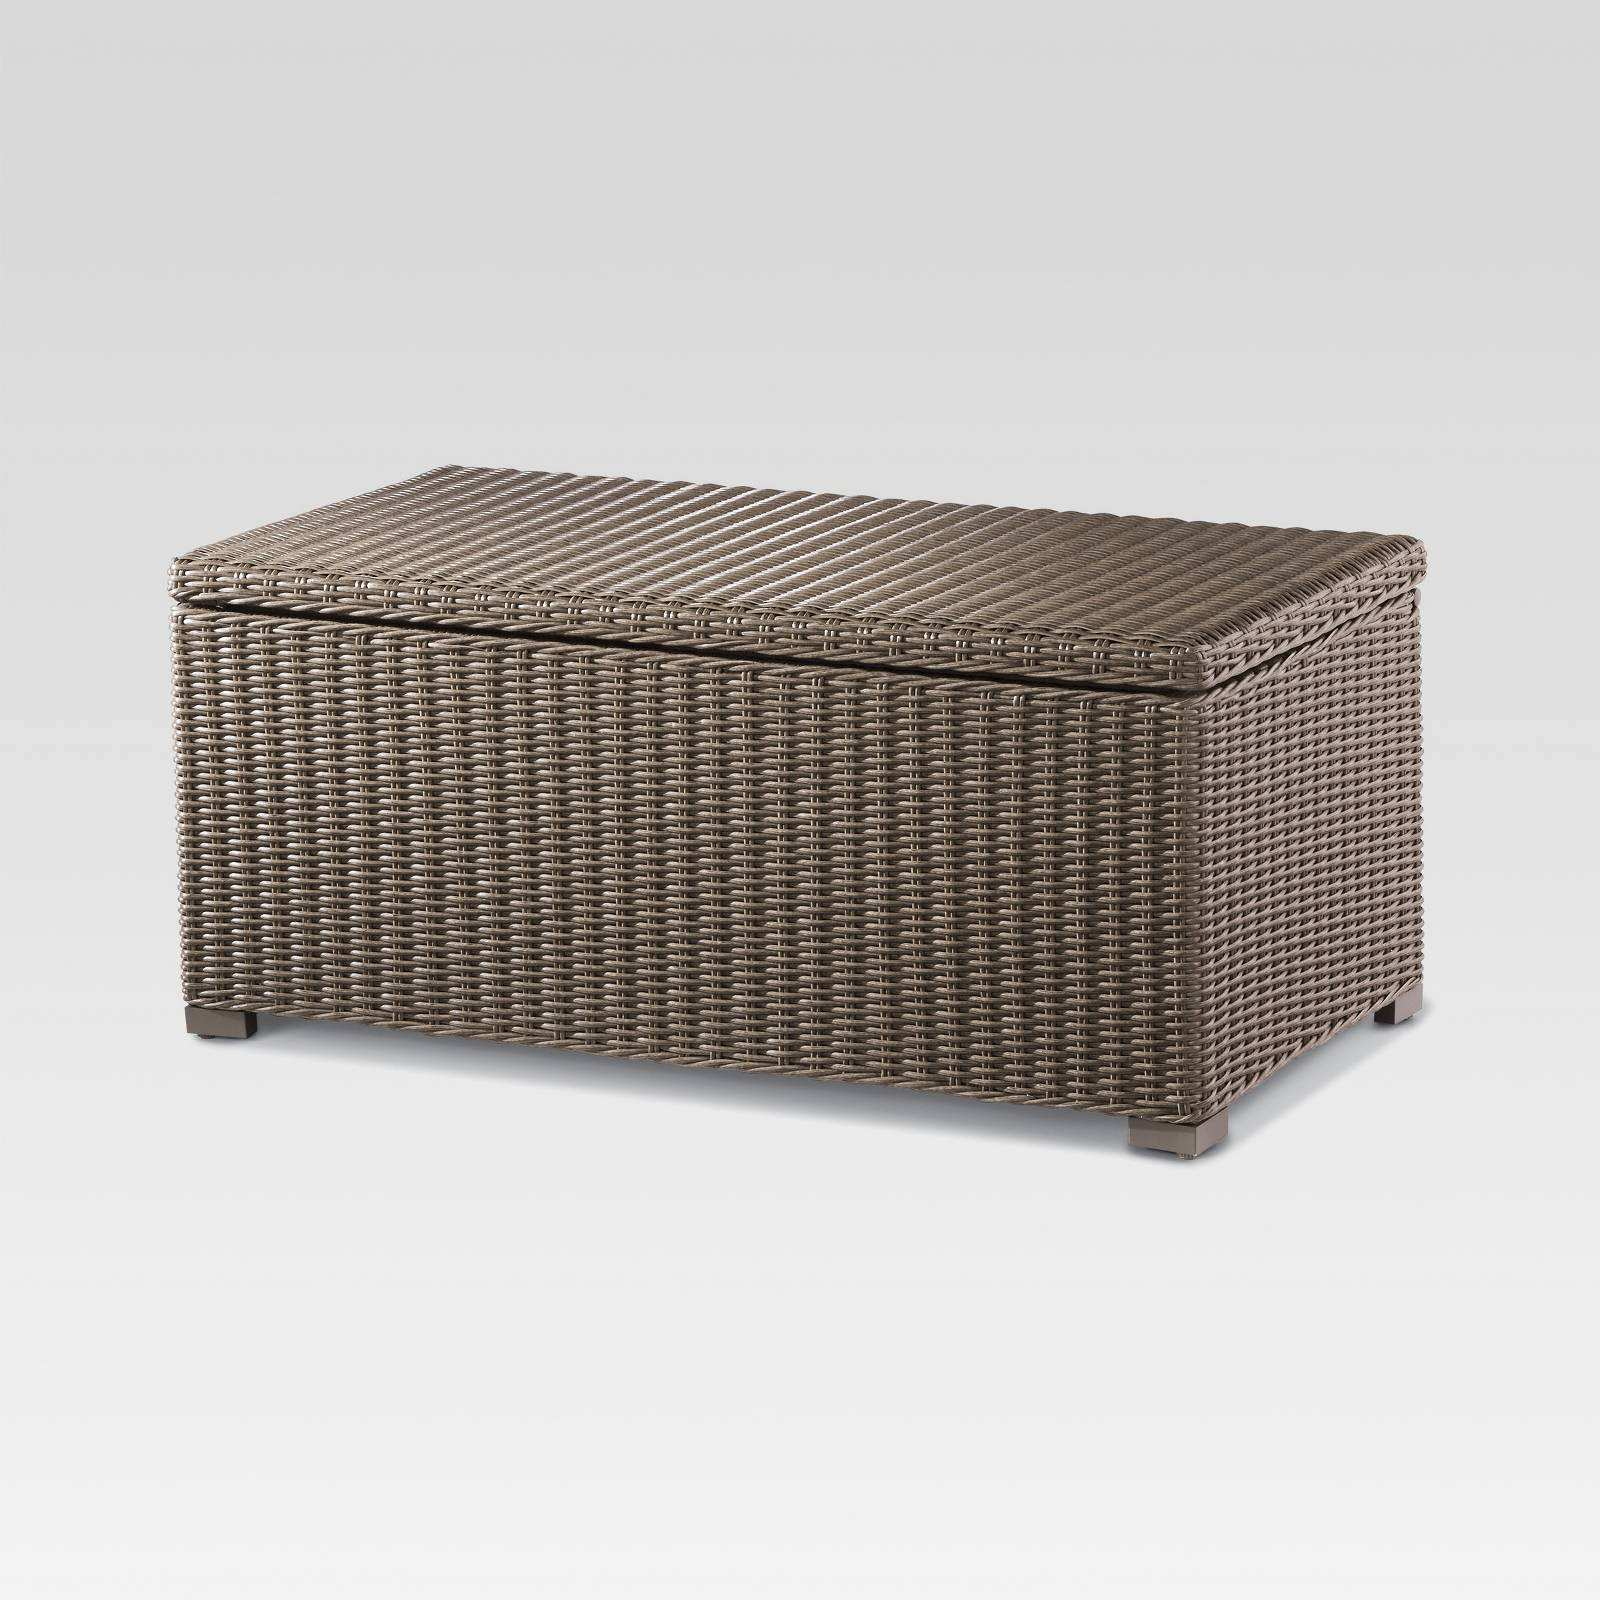 luxury gallery inspirations about threshold wicker patio storage accent table heatherstone trunk coffee bar height bistro set small with folding sides high end green side units